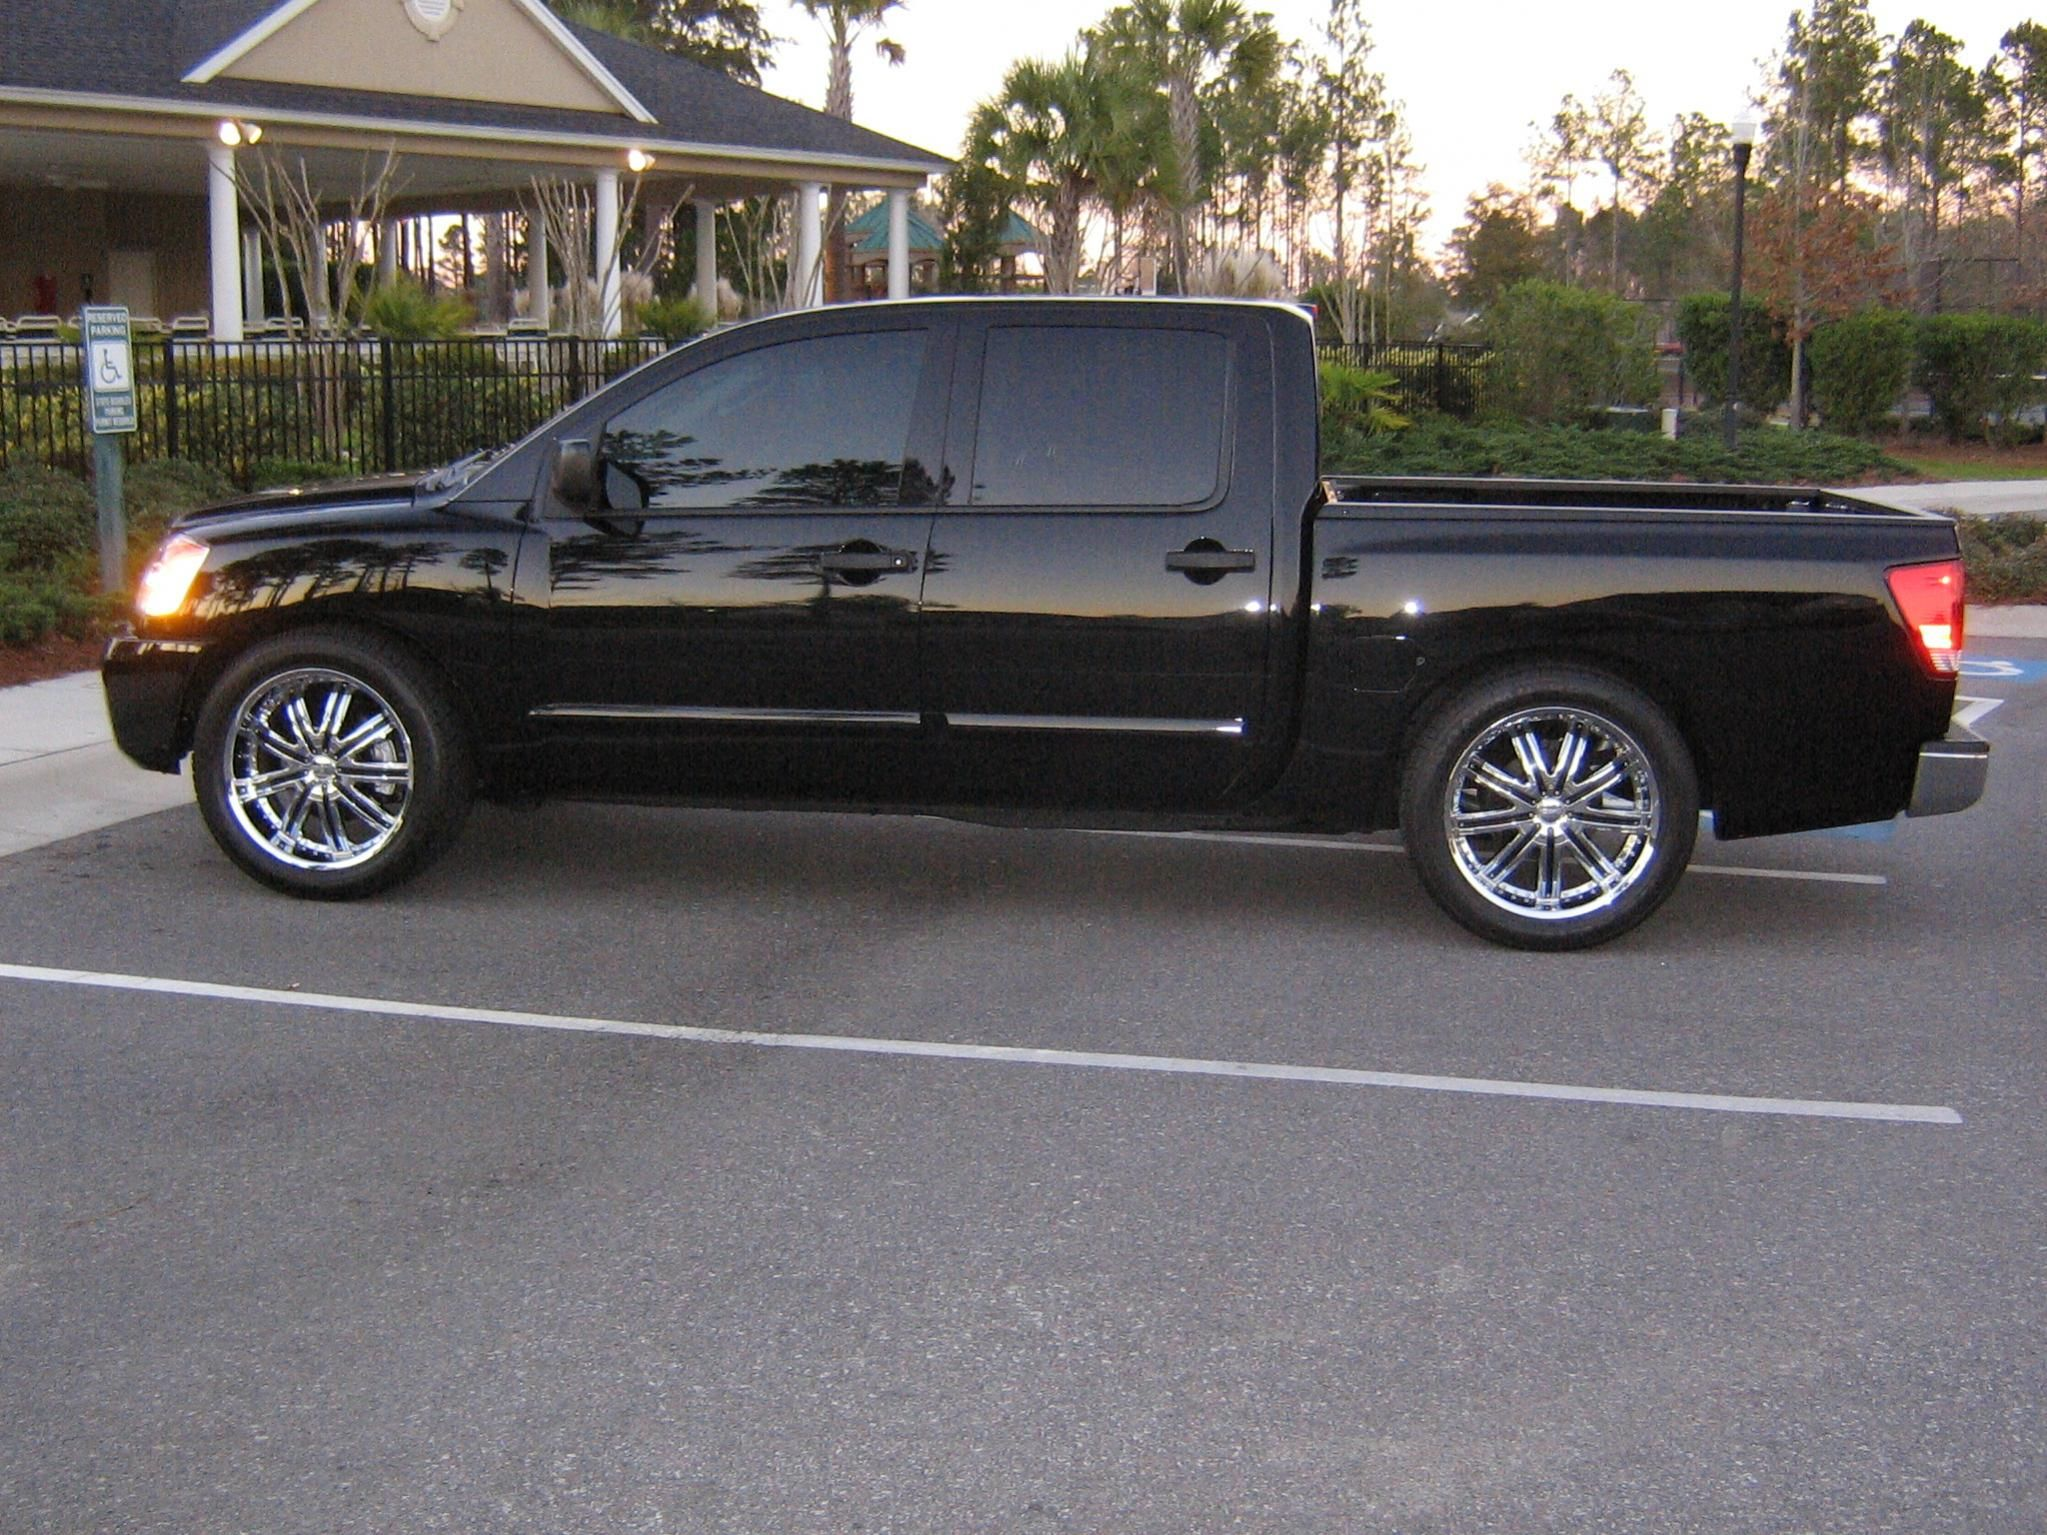 Nissan Titan On 22 Inch Rims Find the Classic Rims of Your Dreams - www.allcarwheels.com